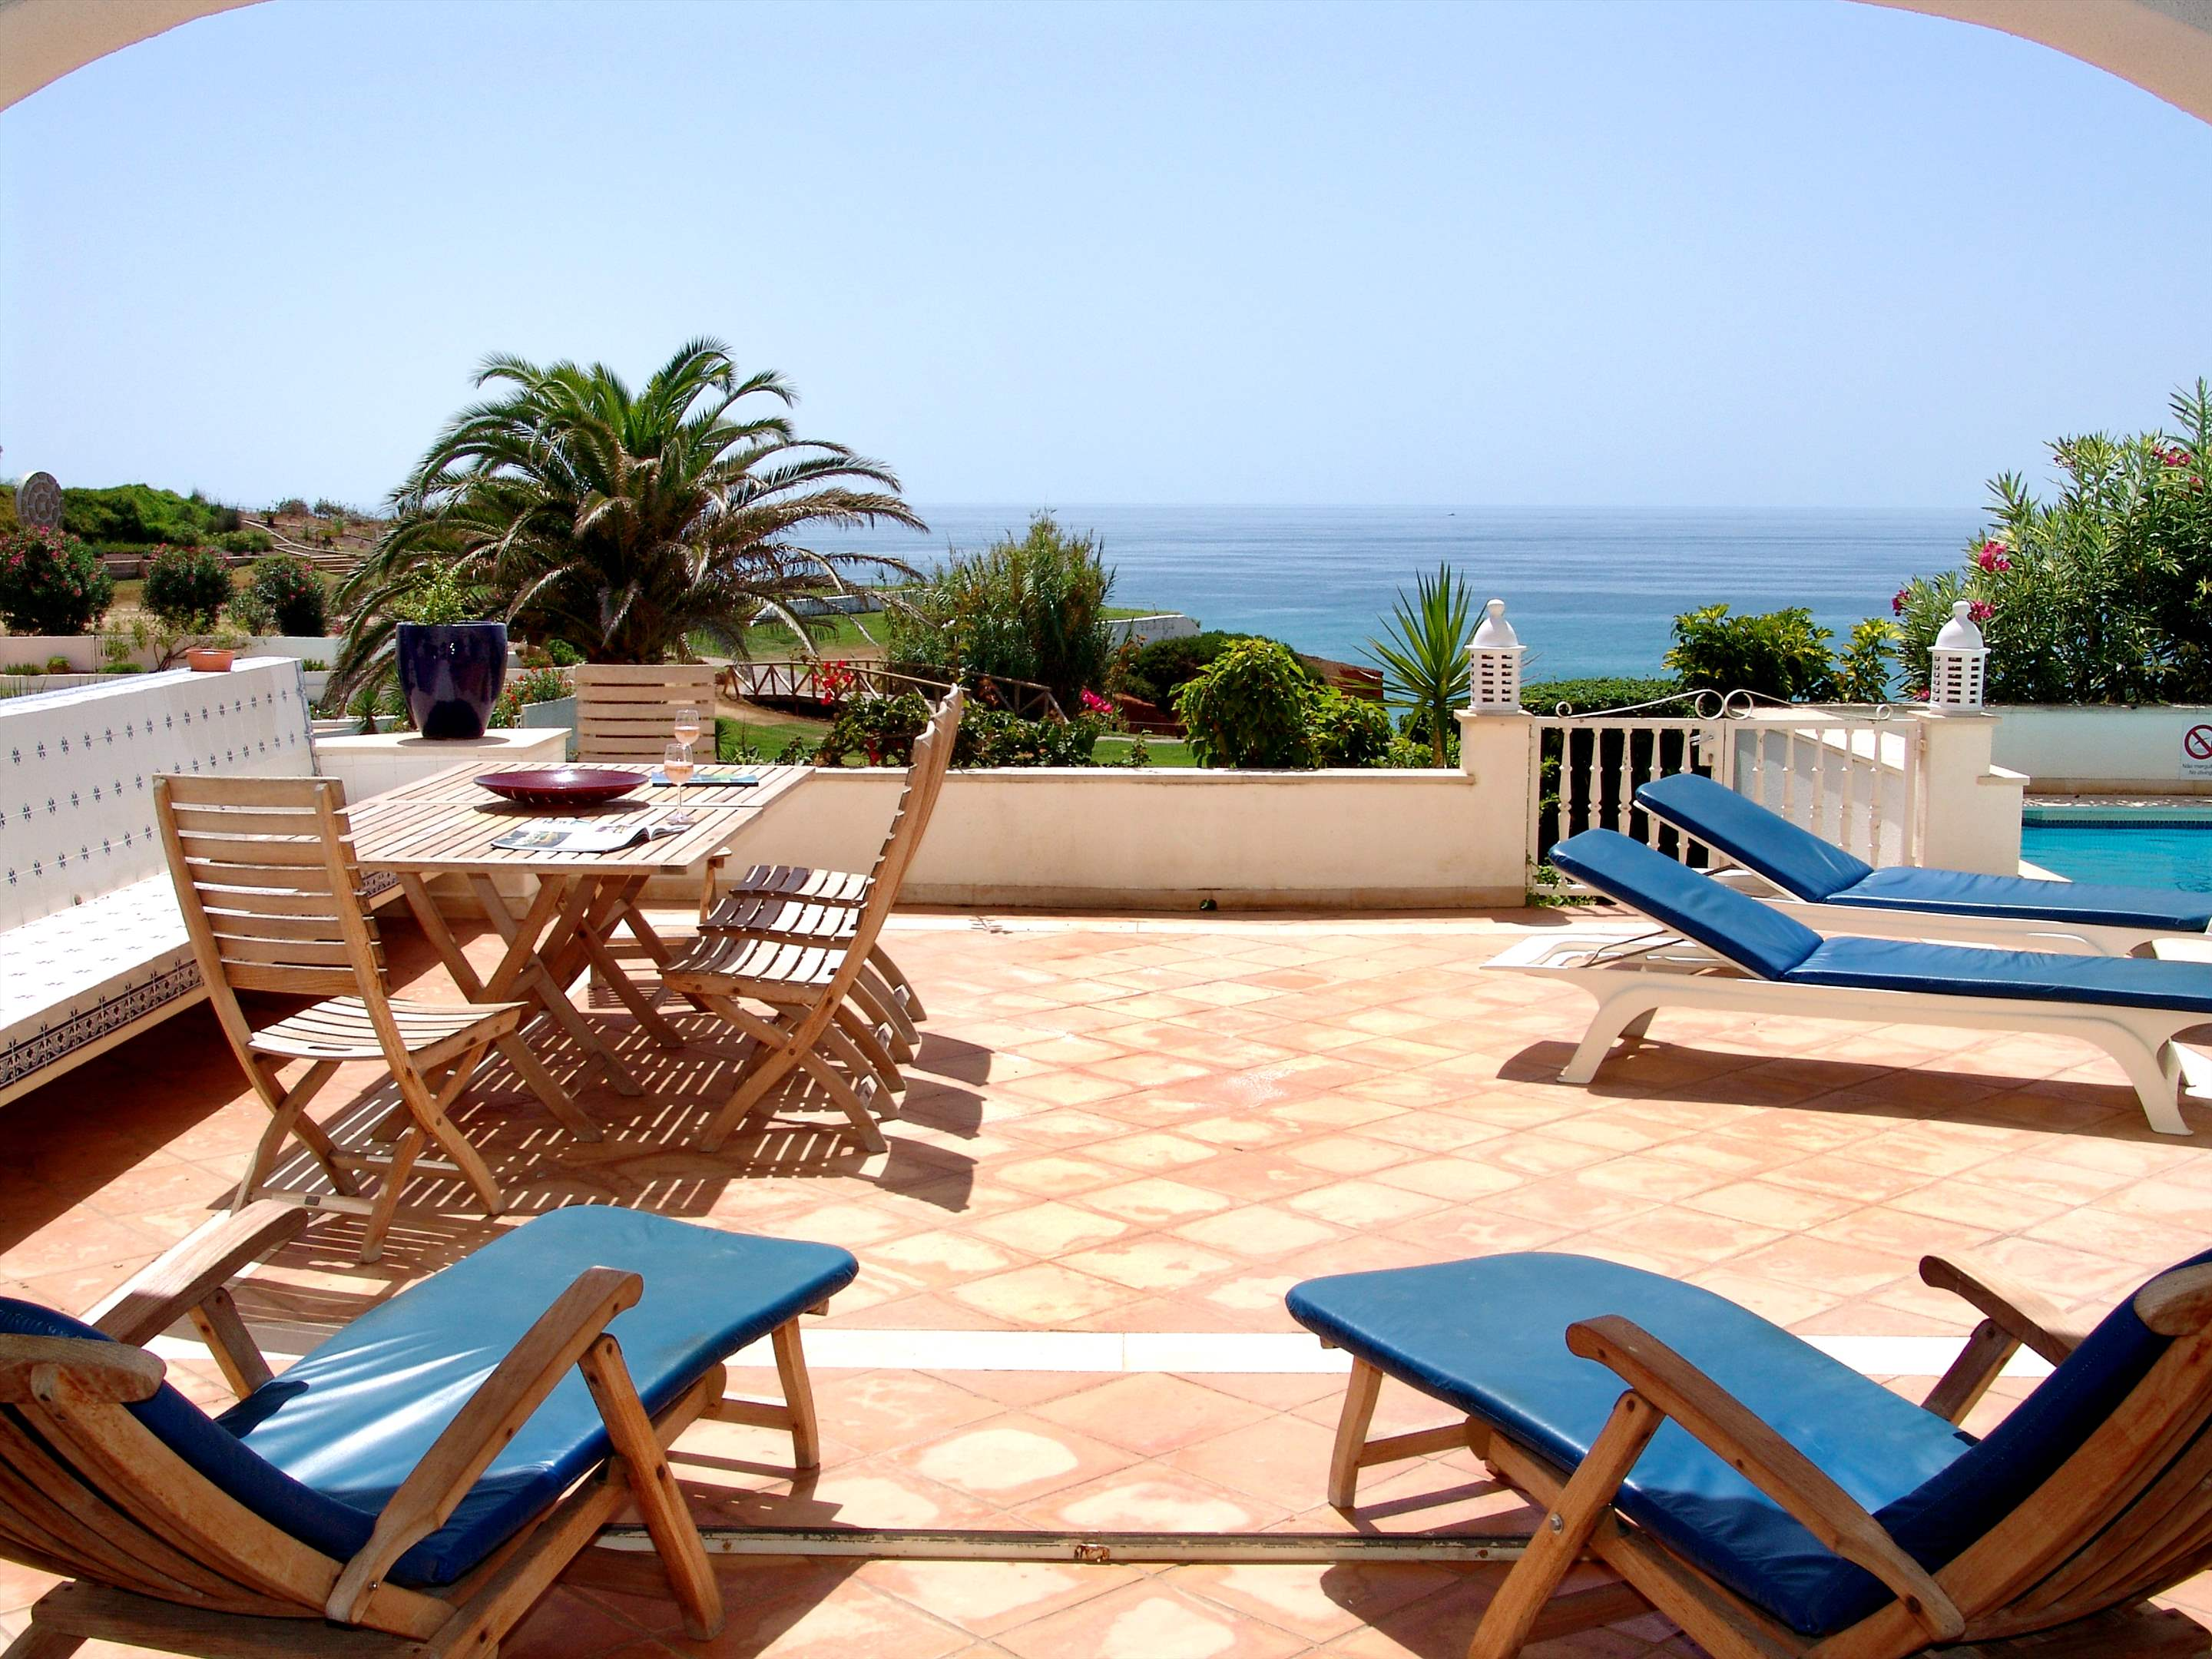 Villas Louisa, 4 Bedroom, 4 bedroom villa in Vale do Lobo, Algarve Photo #24